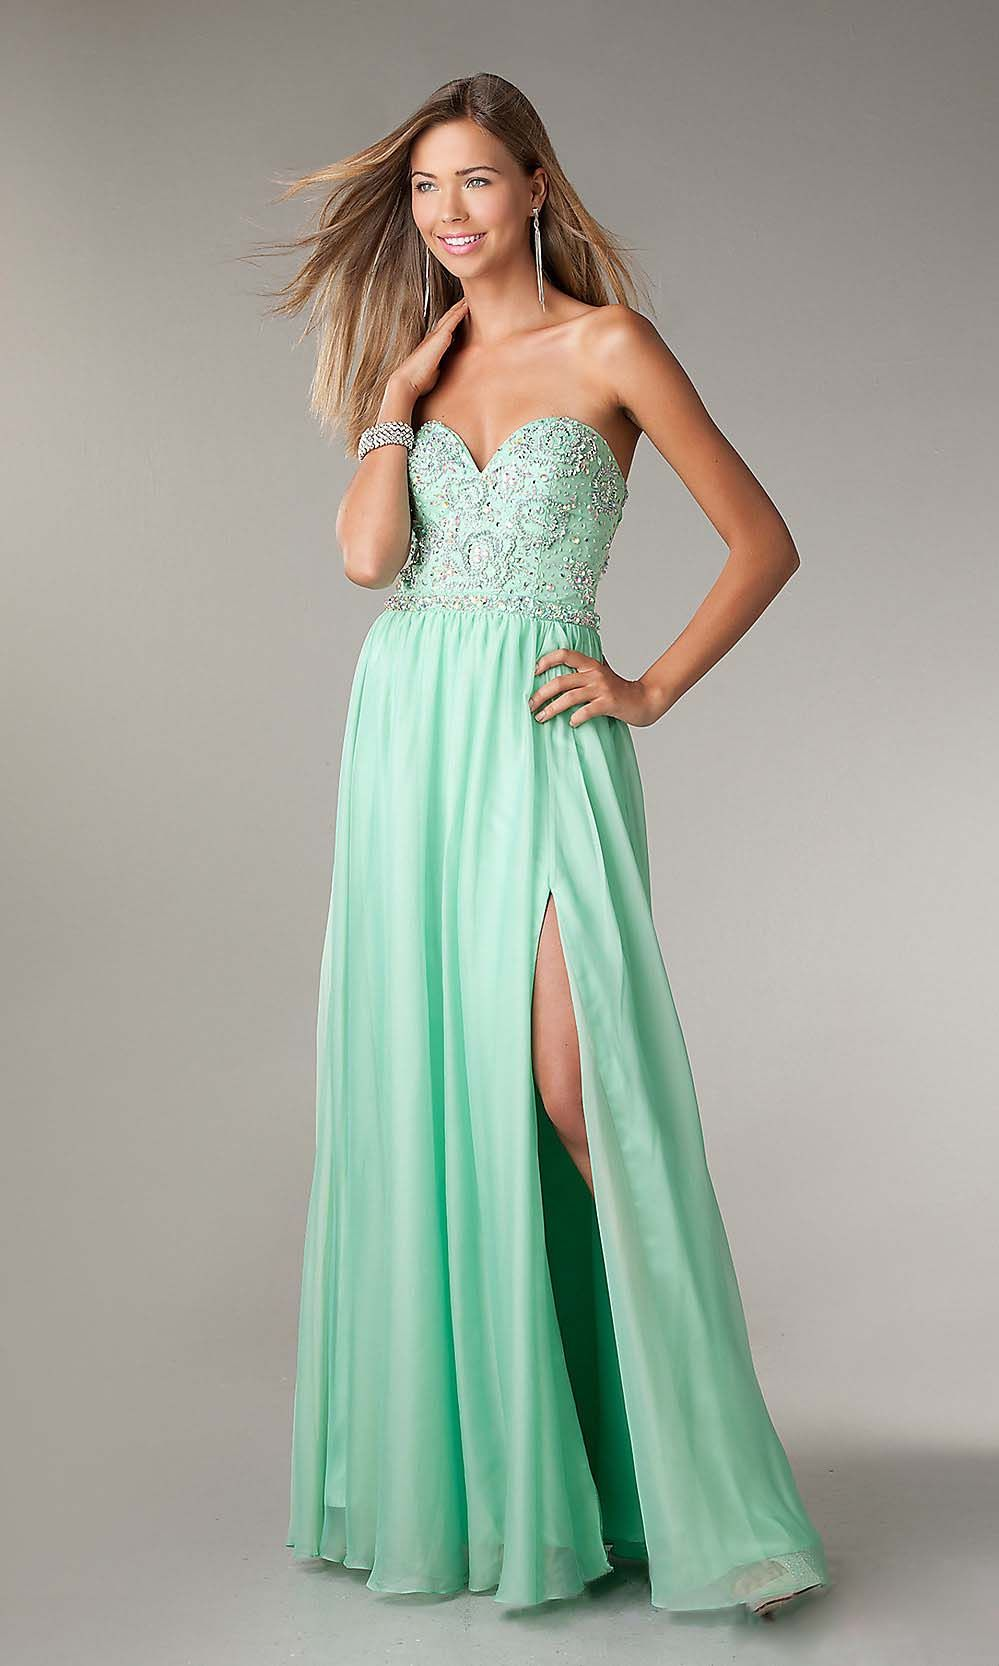 Green prom dress long prom dresses cheap prom dress elegant green prom dress long prom dresses cheap prom dress elegant prom dresses ombrellifo Images